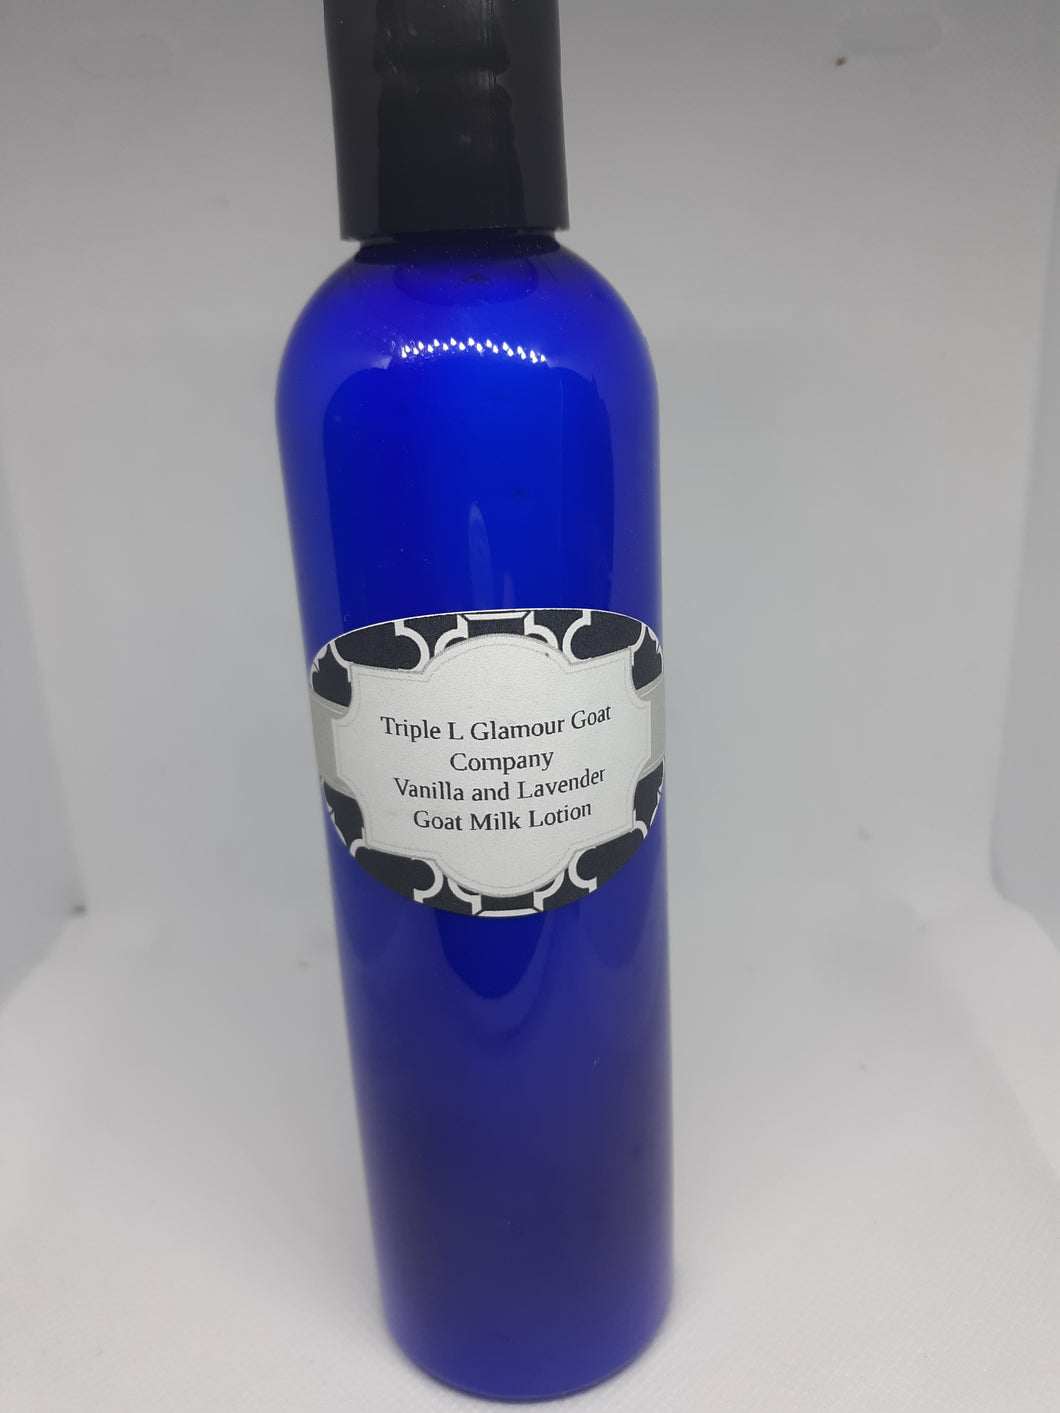 Triple L Vanilla and Lavender 8oz Goat Milk Lotion* Due to Covid bottle shortages color and style may vary